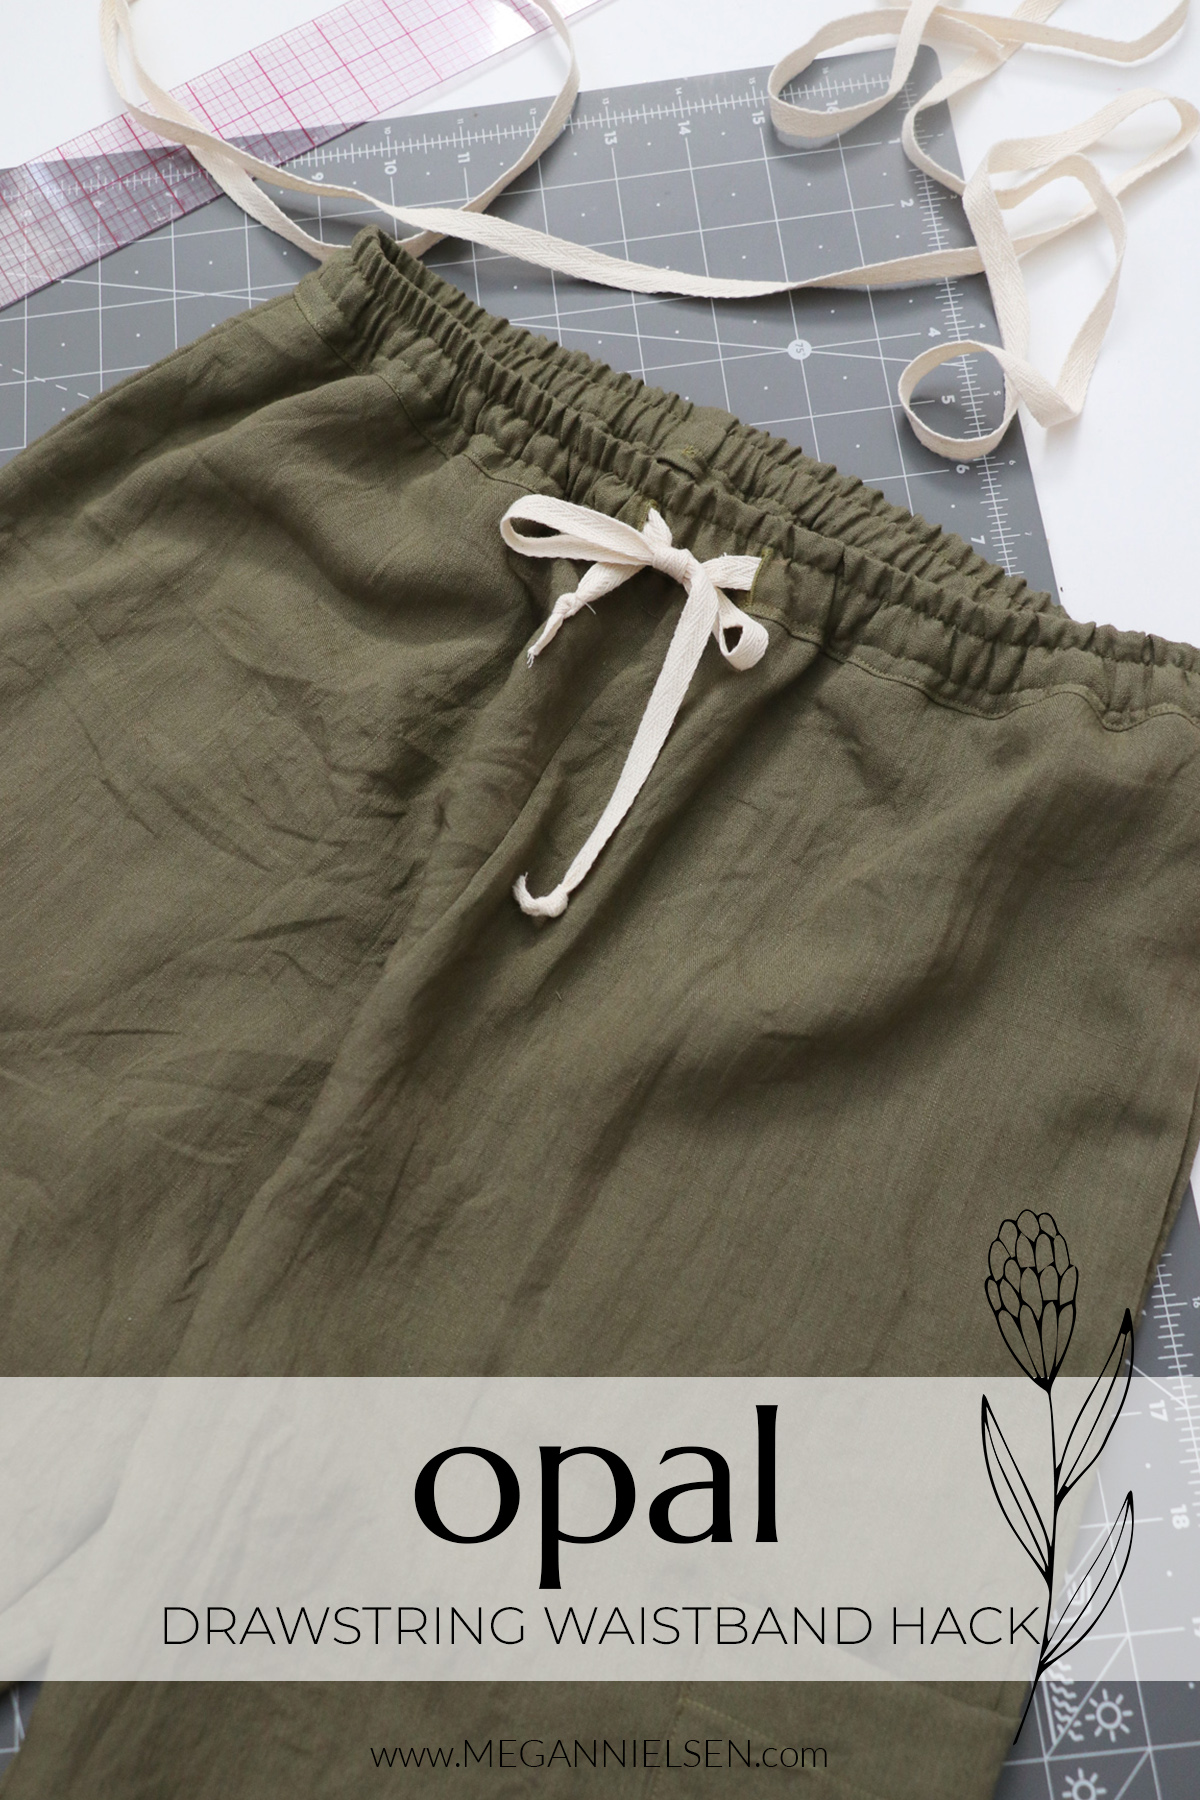 Drawstring waistband hack for the Opal pants and shorts pattern